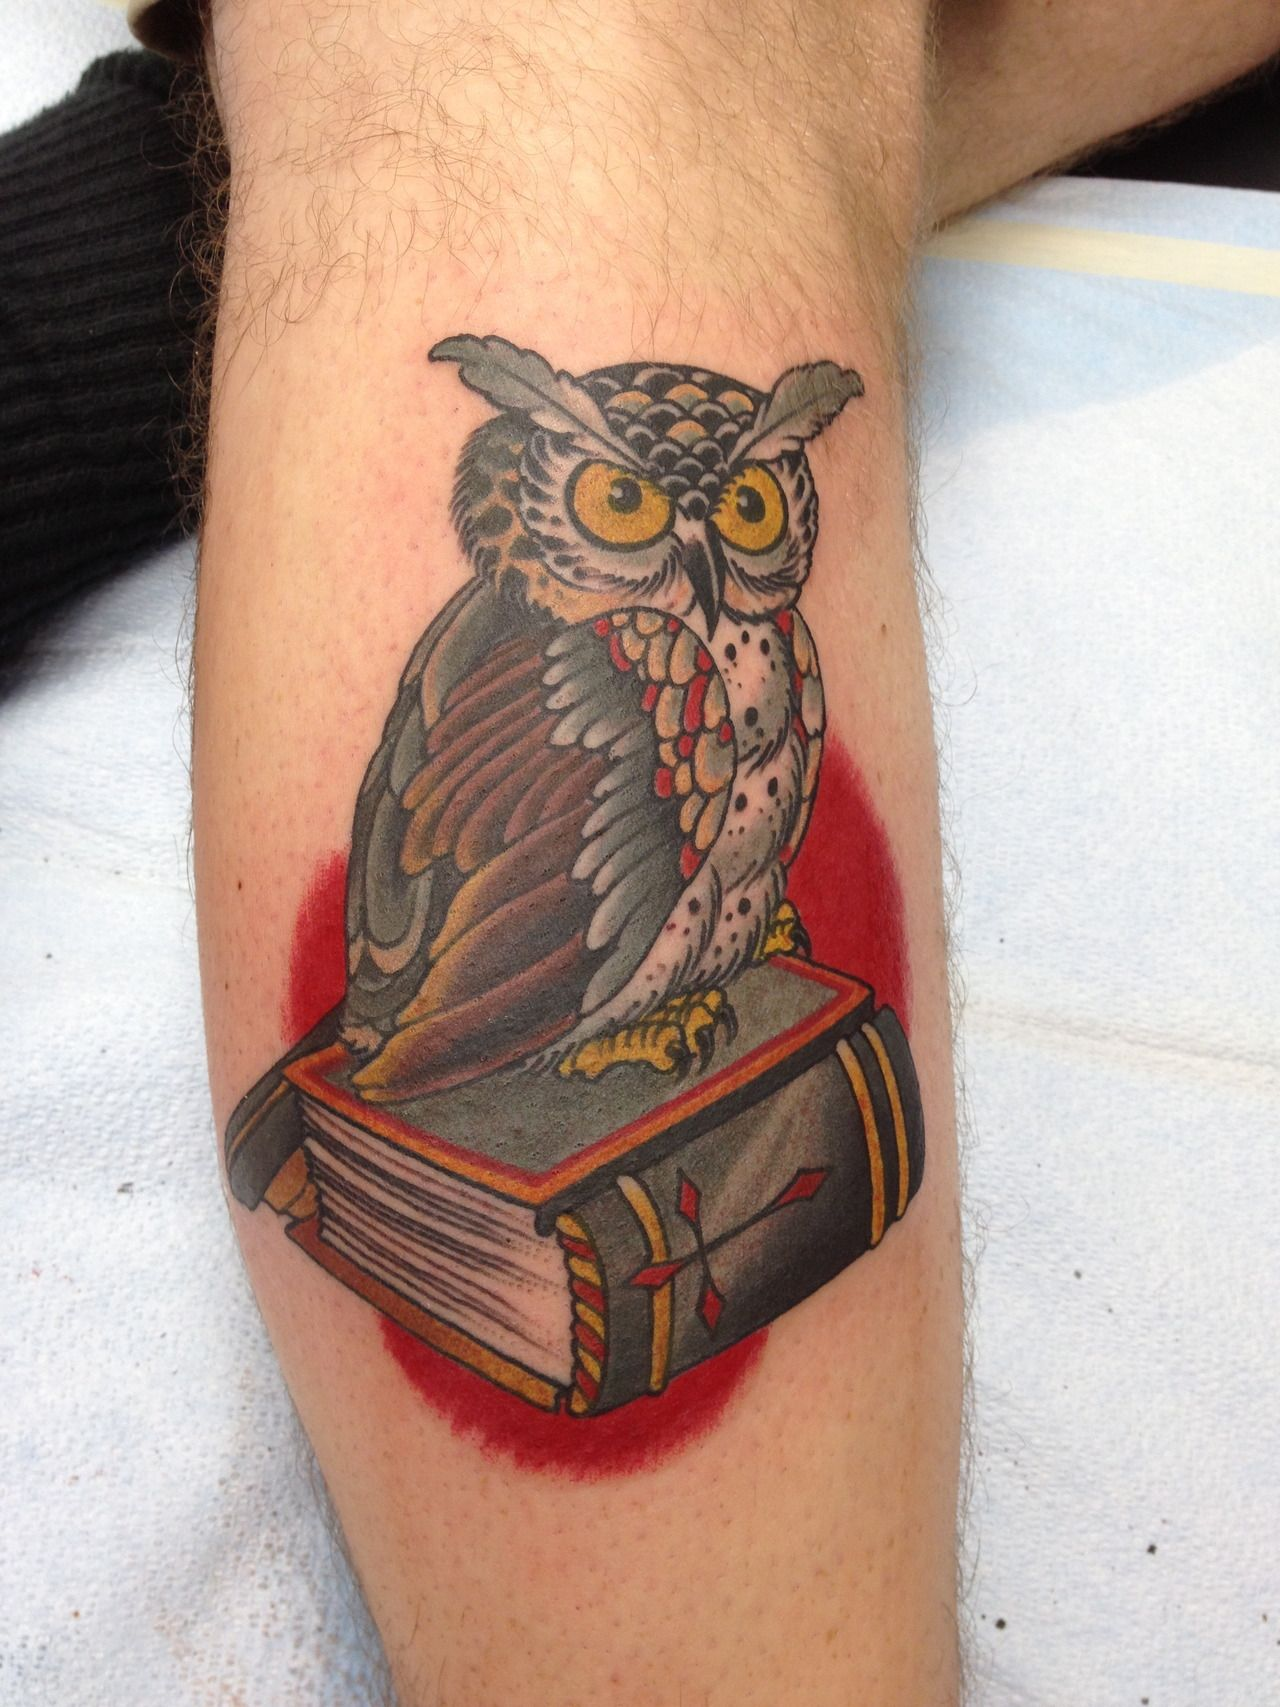 Traditional Owl Perched On Book Tattoo Done By Mark Vanness At Vanness Fellows Tattoo Boutique Raleigh N C Tattoos Tattoos For Women Traditonal Tattoo